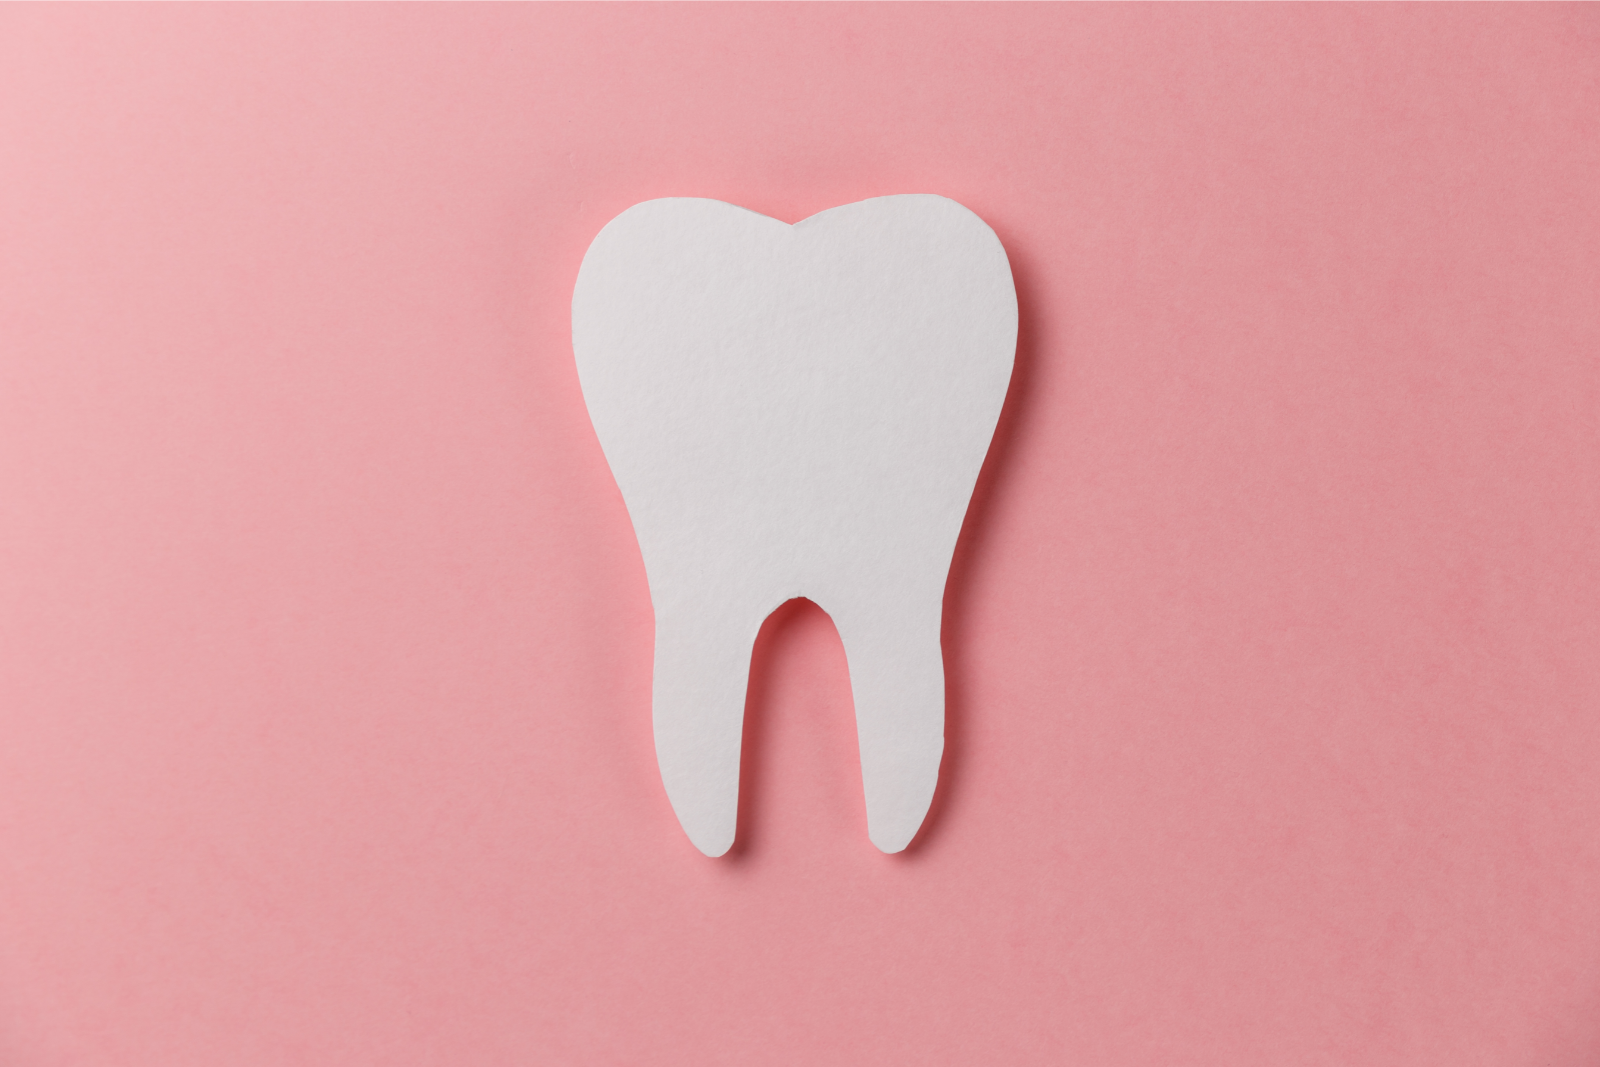 12 Fun Facts About Teeth